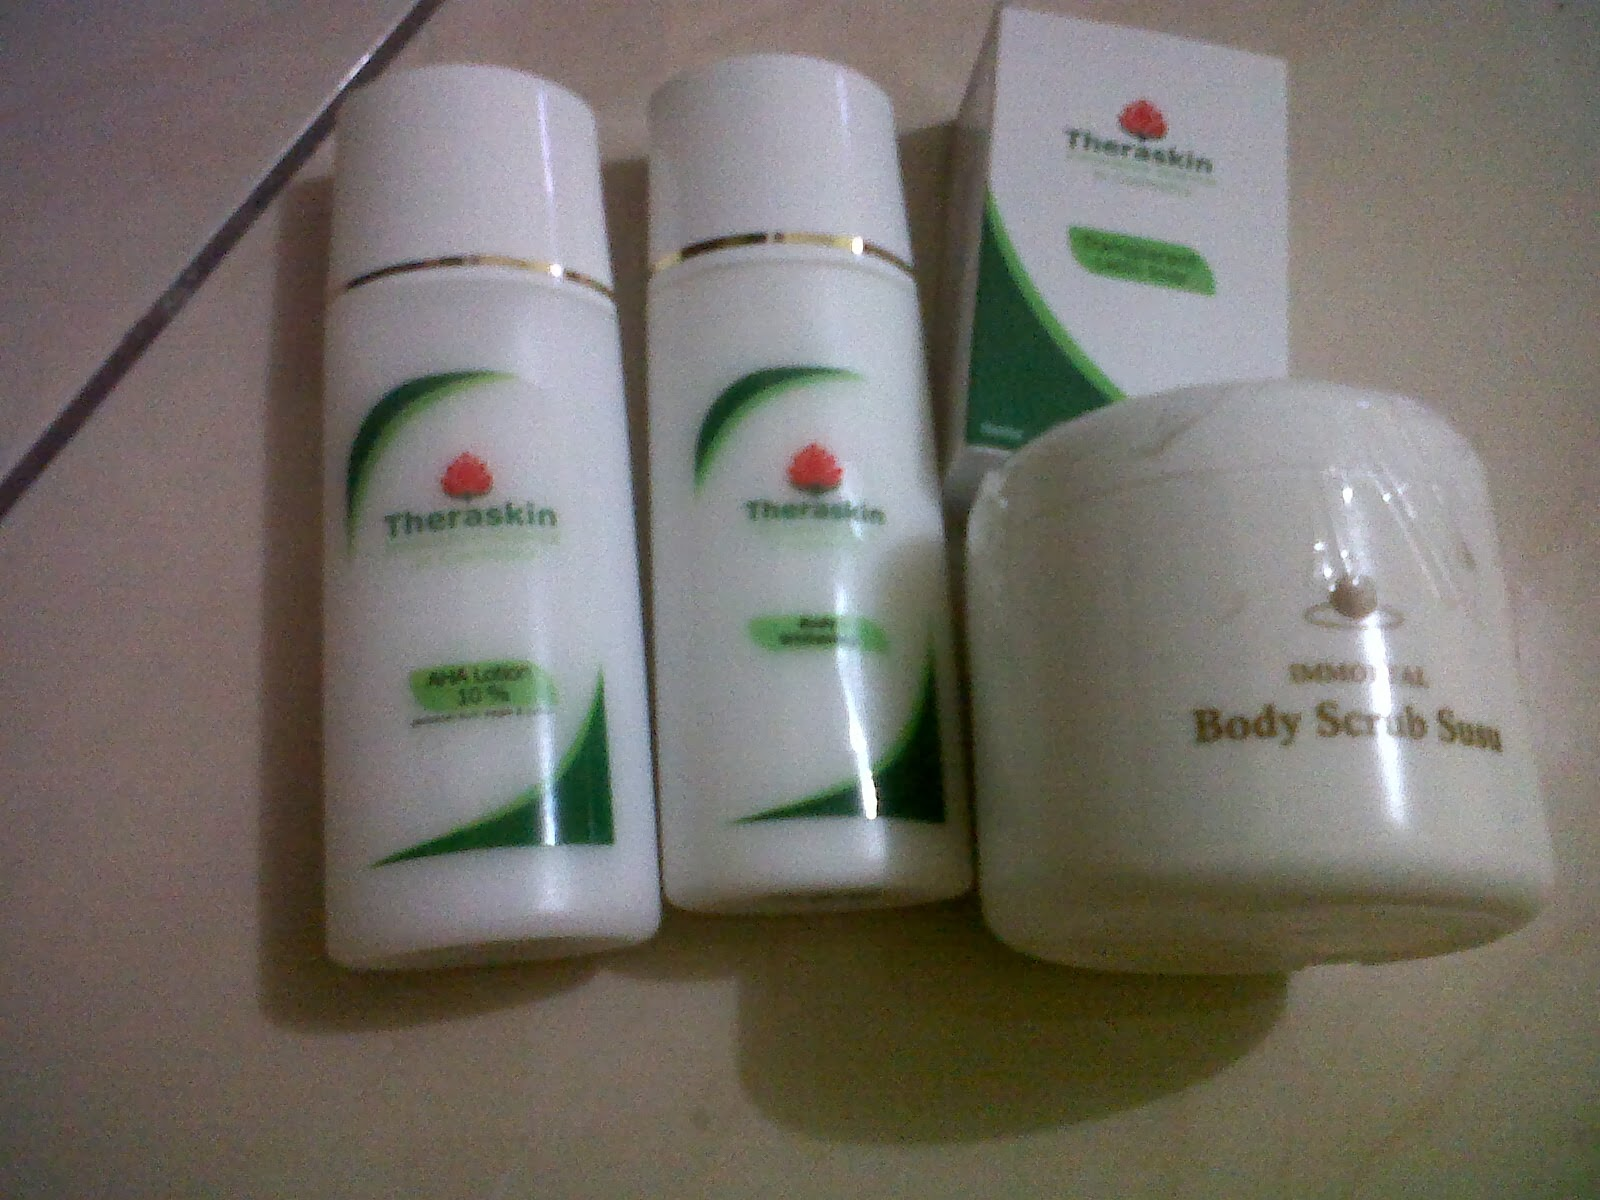 Theraskin For Your Beauty And Healthy Skin Jual Produk Suncare Brightener Pink Murahamanber Bpomreseller Are Welcome